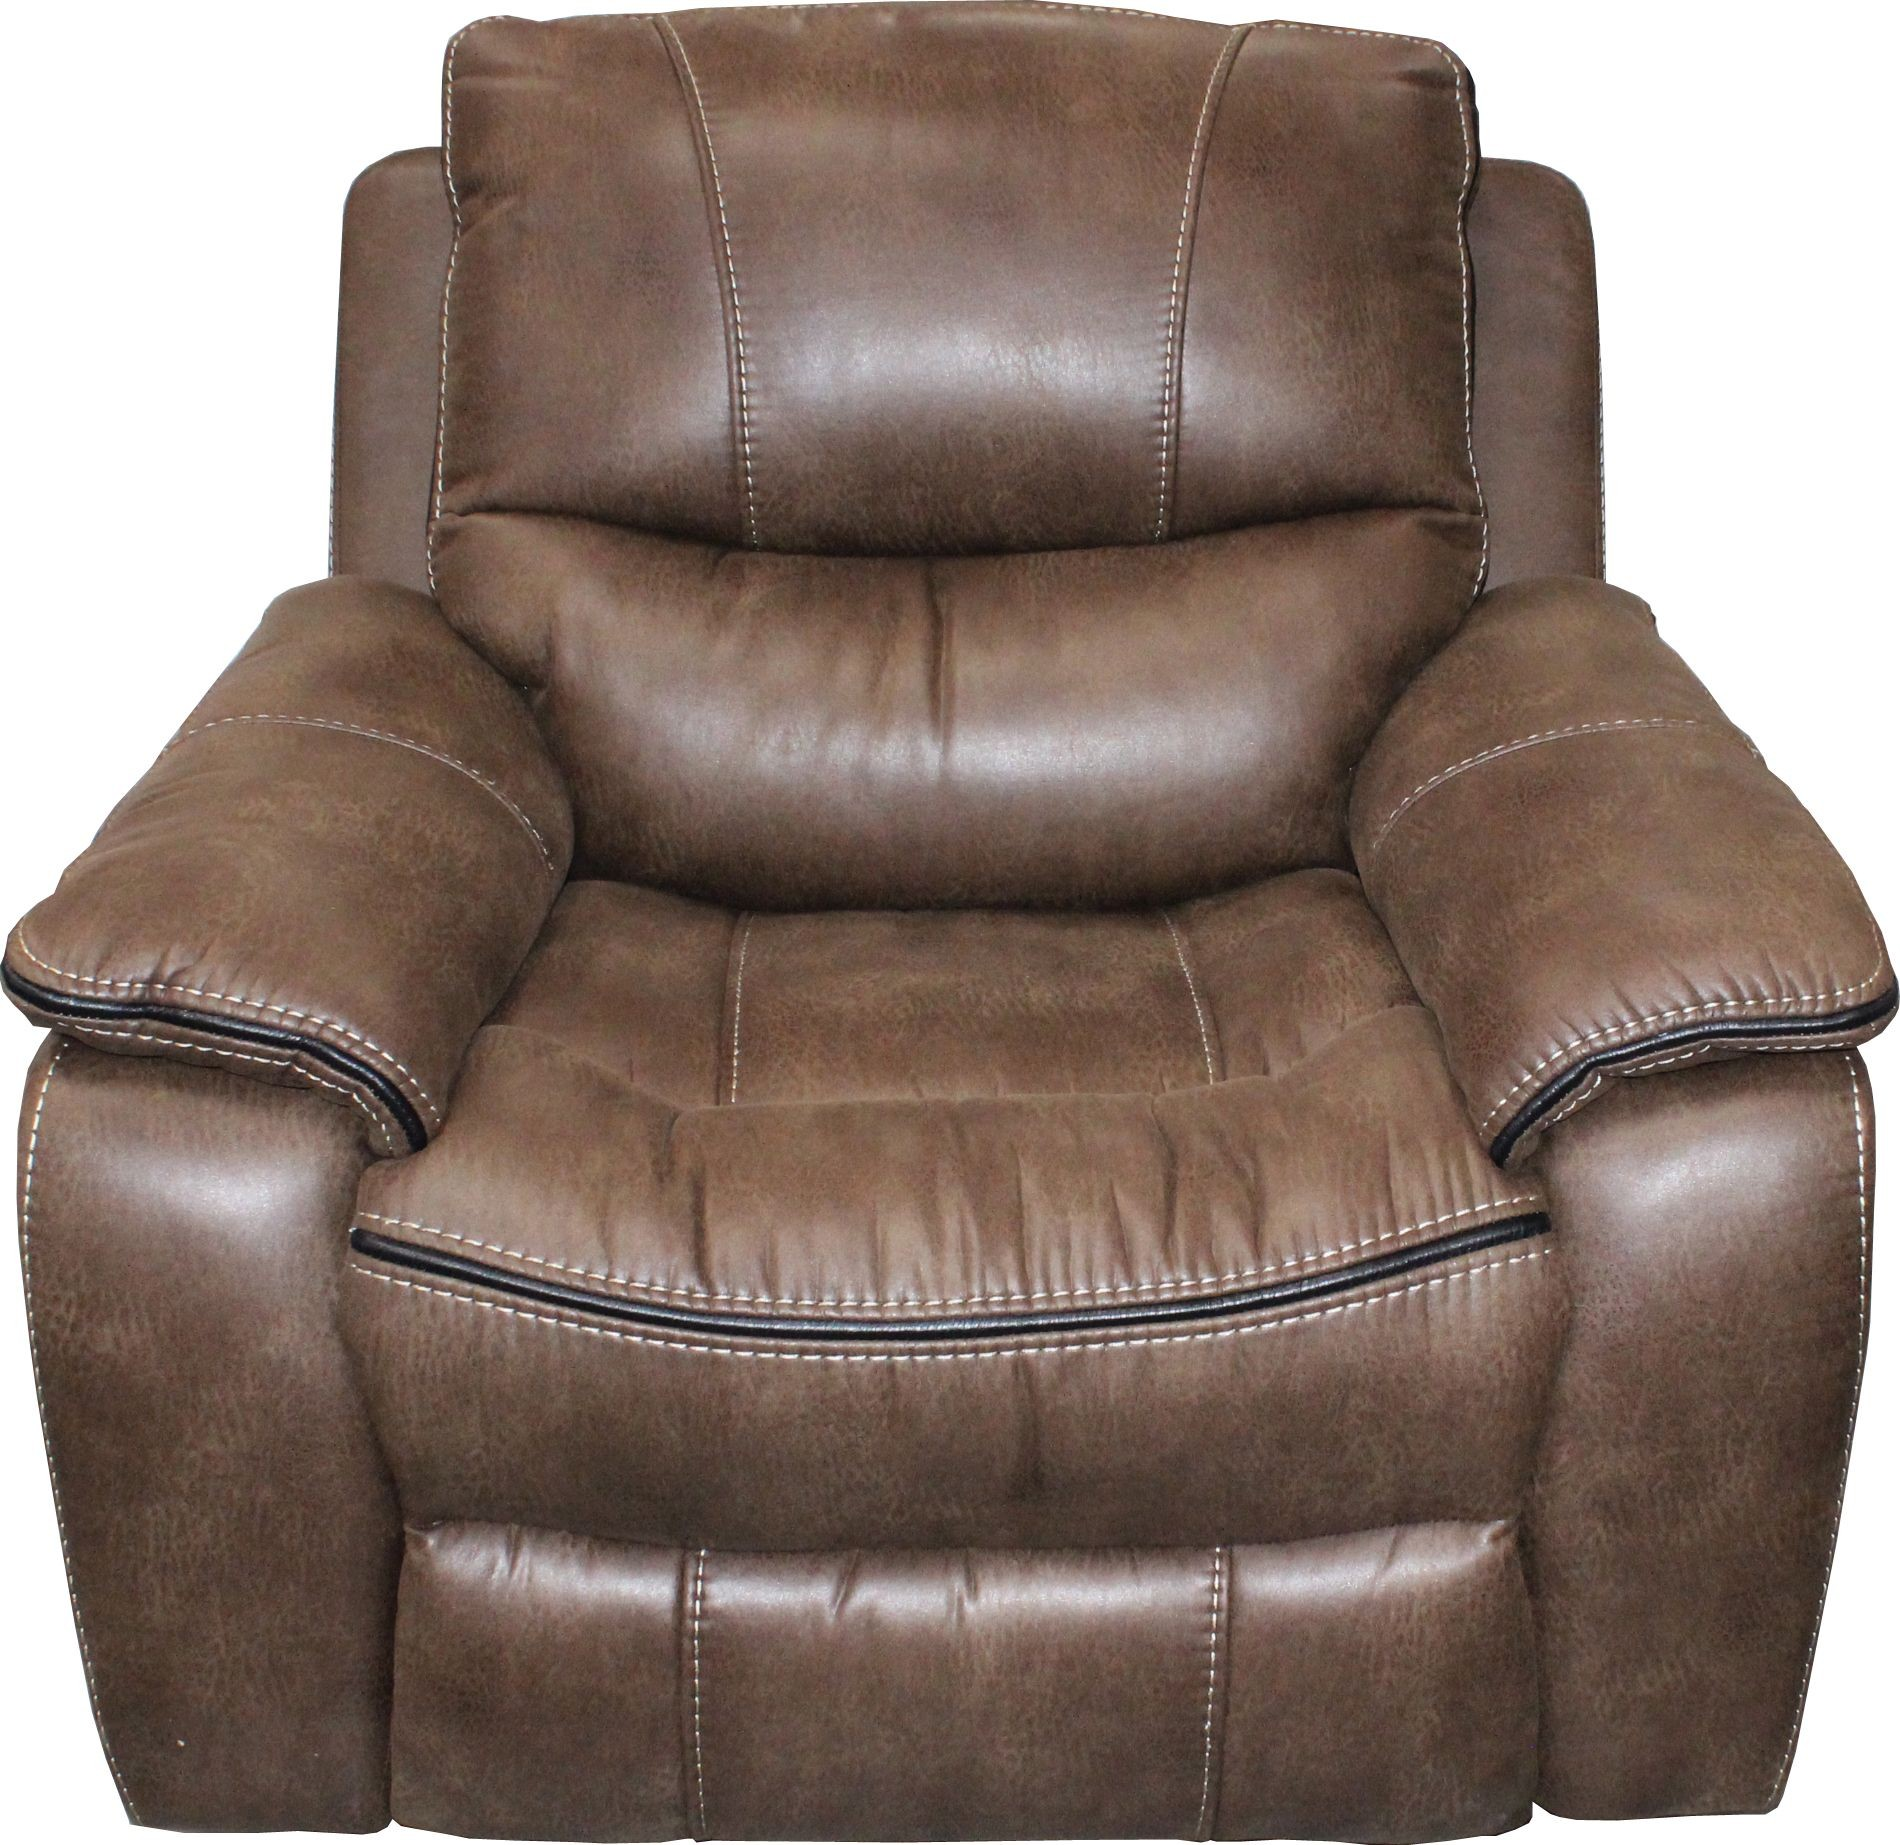 monoblock chair cover for sale philippines table high argos remus mocha power recliner from parker living mrem 812p